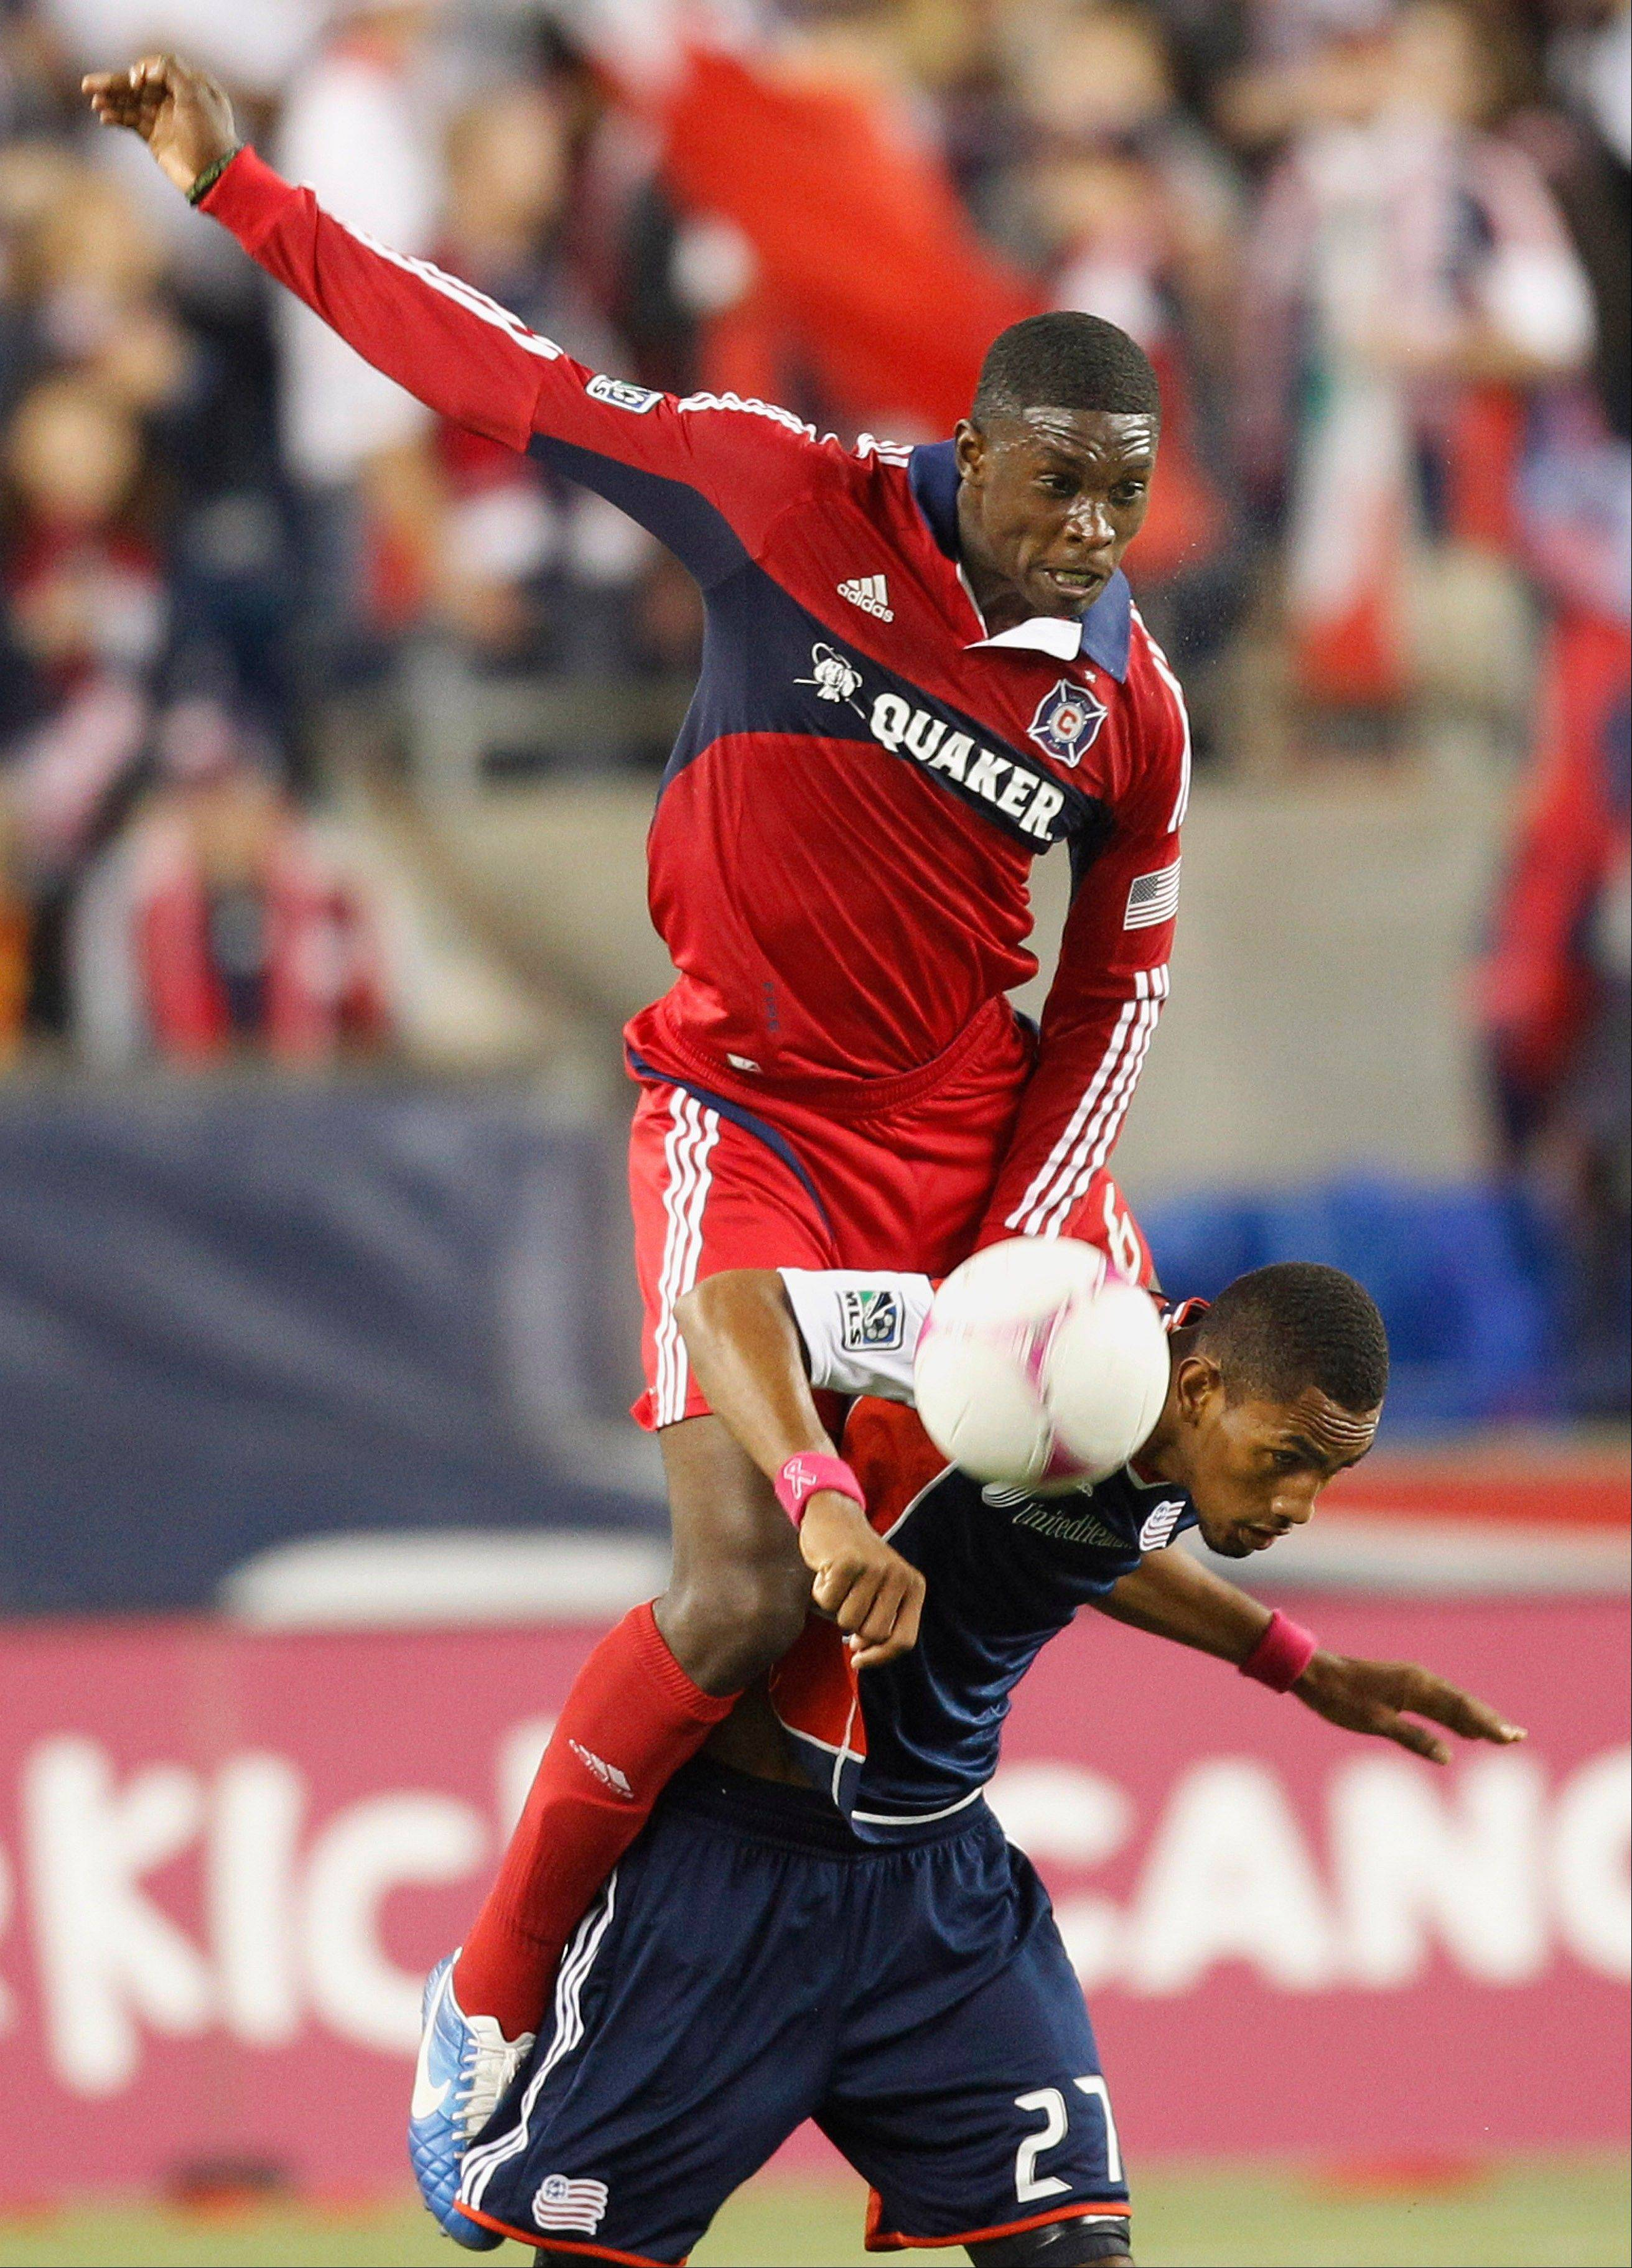 Chicago Fire defender Jalil Anibaba, top, leaps over New England Revolution�s Jerry Bengtson (27) in an attempt to get to the ball during their MLS match in Foxborough, Mass., Saturday. New England won 1-0.